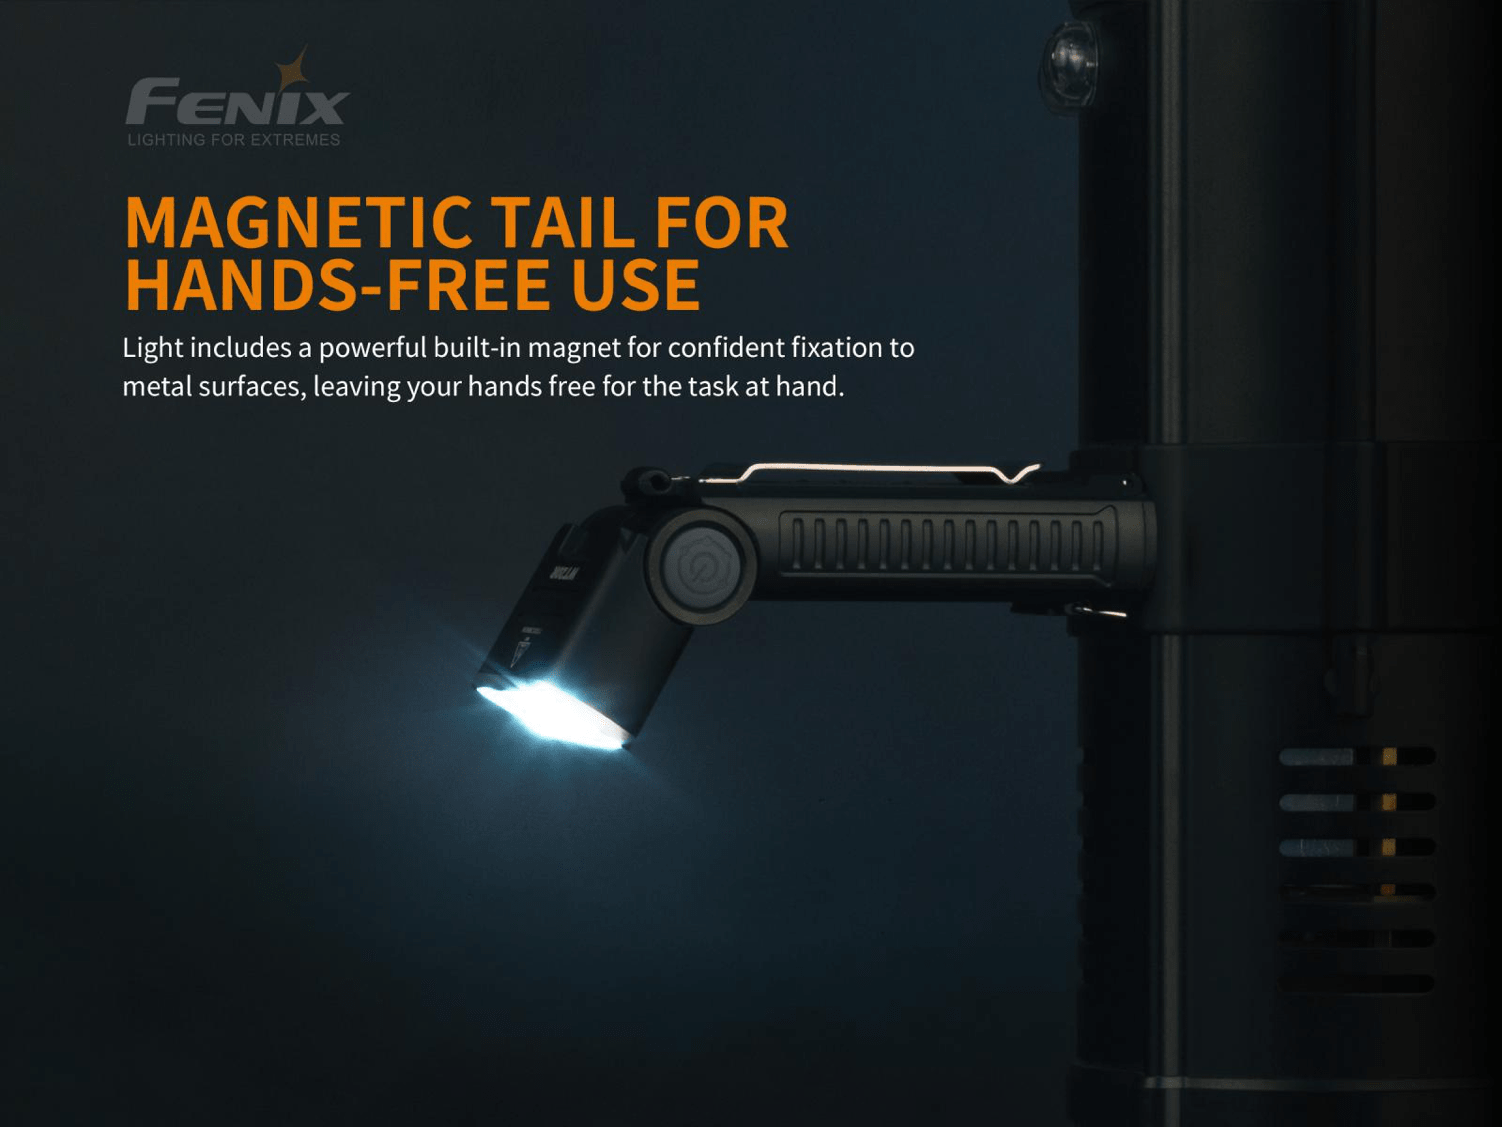 Fenix WT20R Rechargeable Multi-functional Tilting LED Work Light, 400 Lumens with angular head and magnetic base for EDC work, Compact Torch with Floodlight and Spotlight